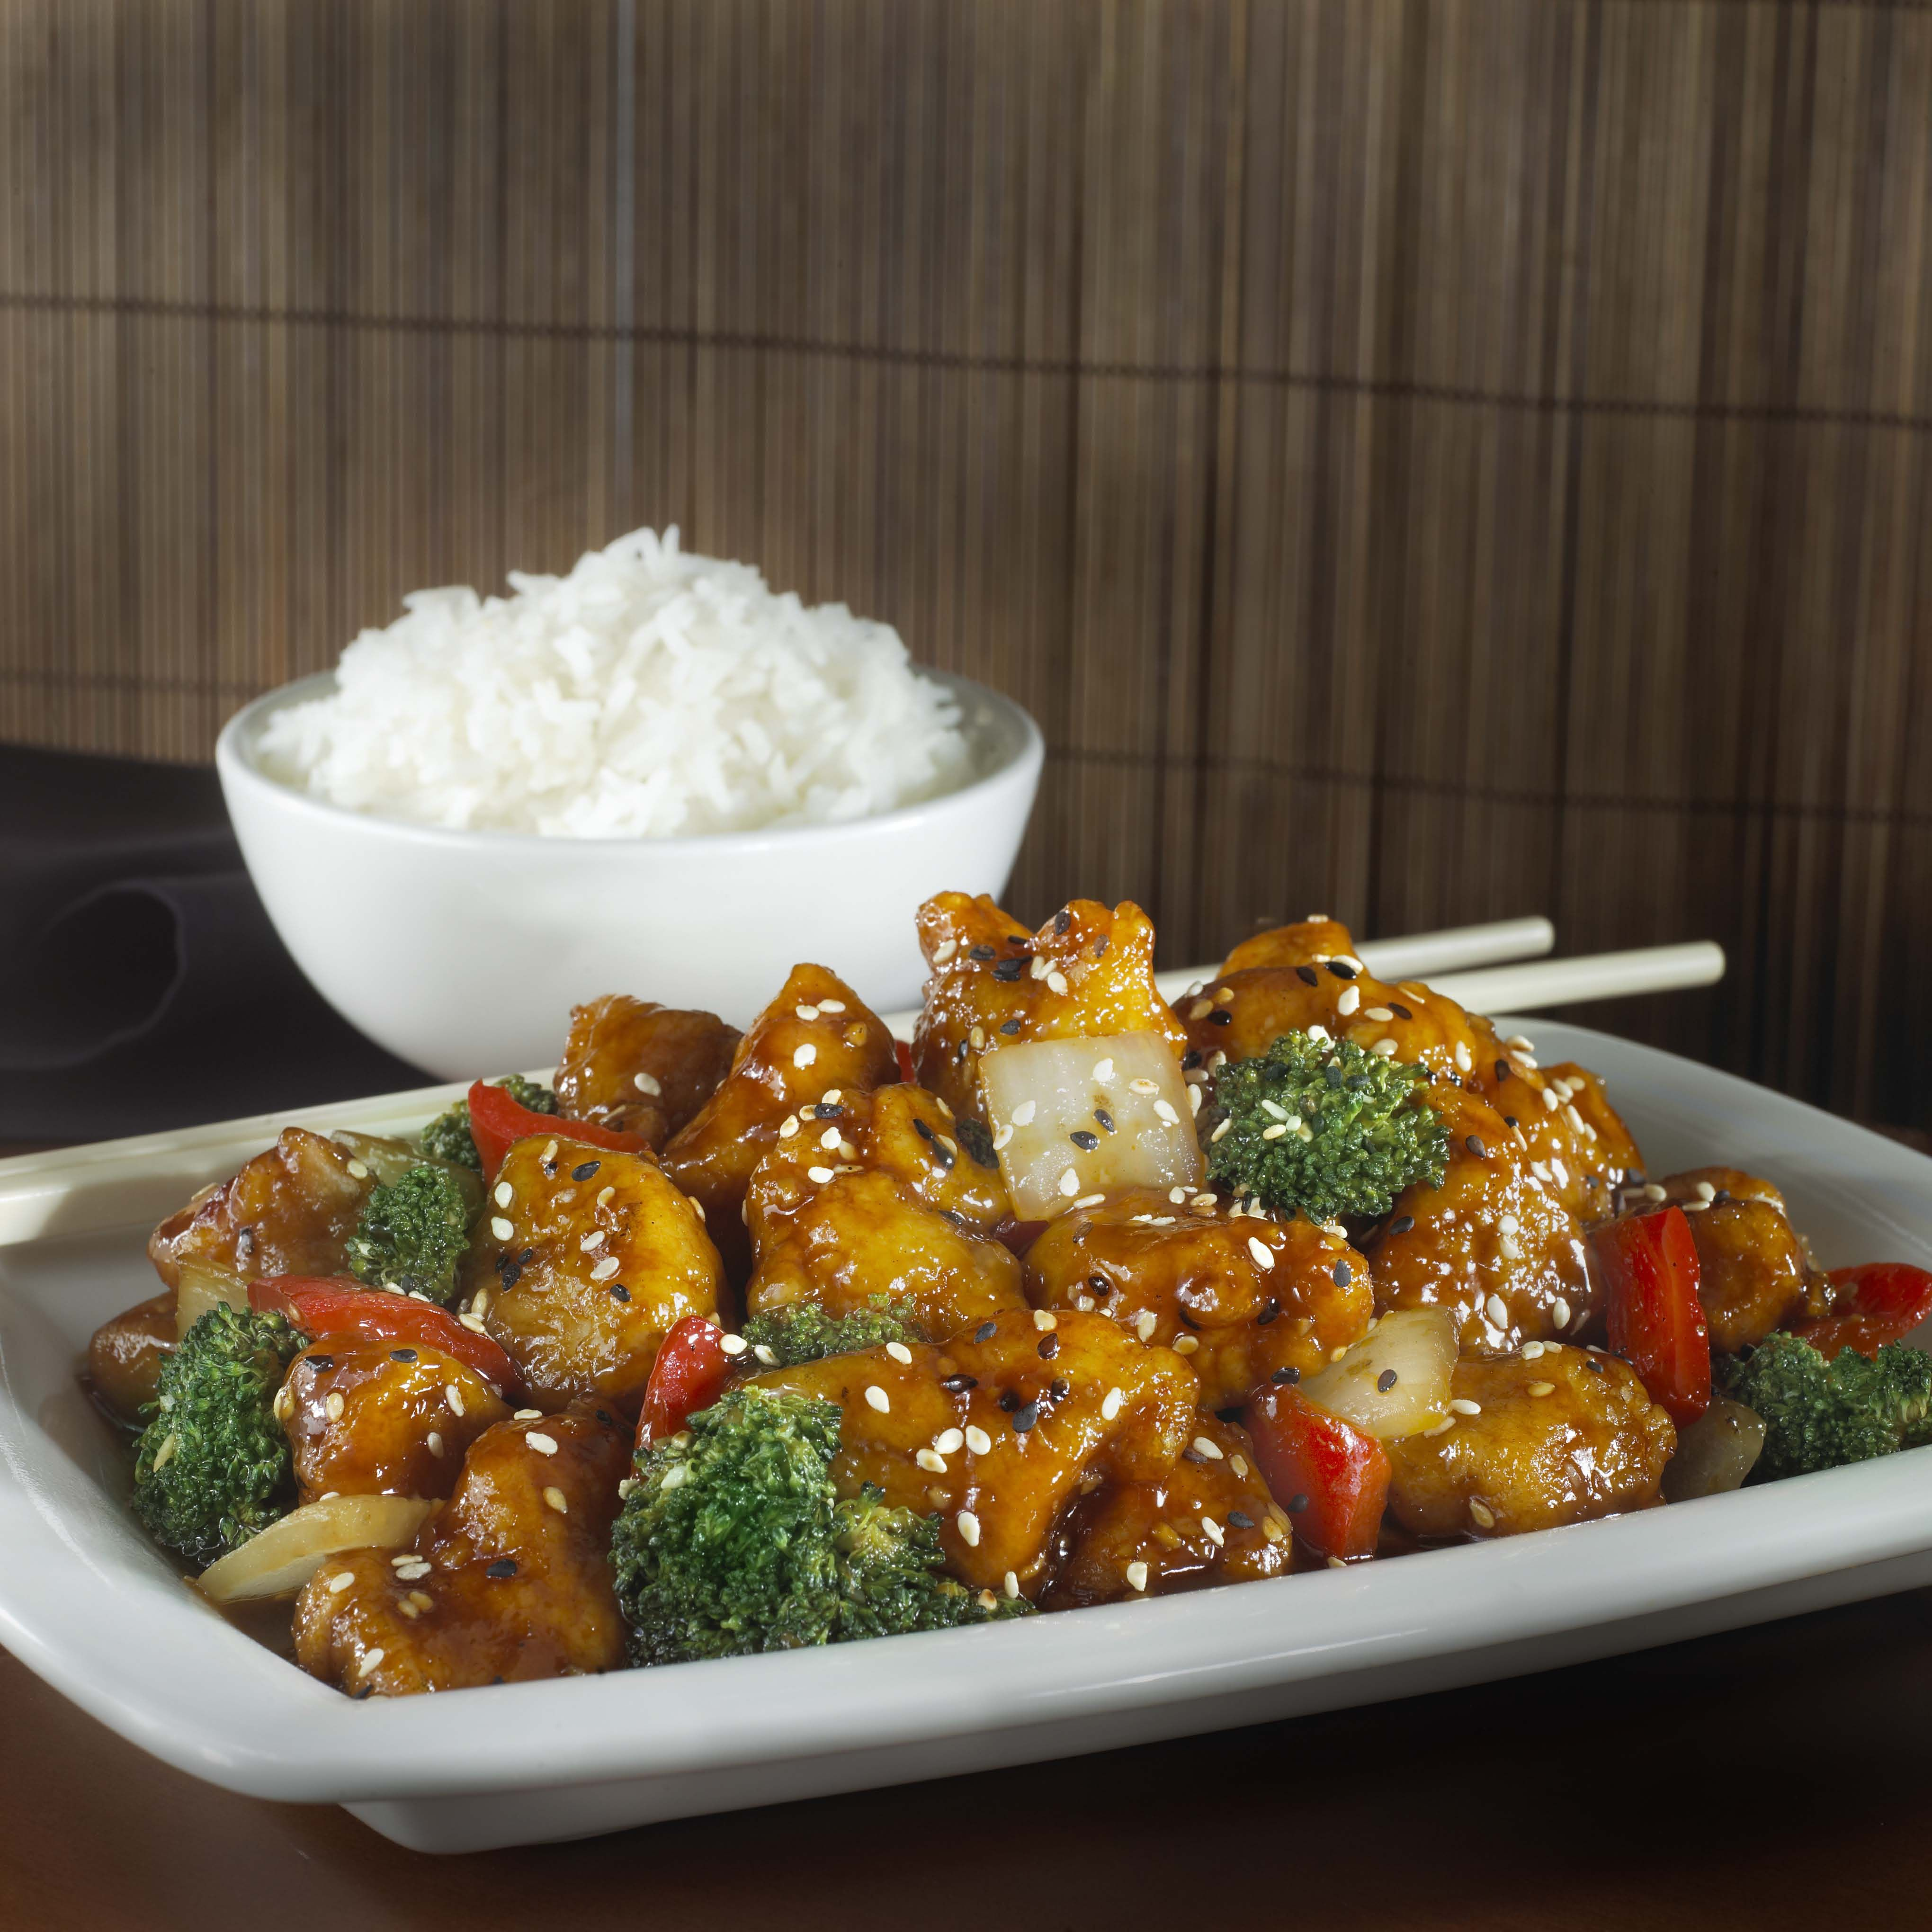 Pf changs sesame chicken chinese pinterest sesame chicken hd wallpaper and background photos of sesame chicken for fans of chinese food images forumfinder Images